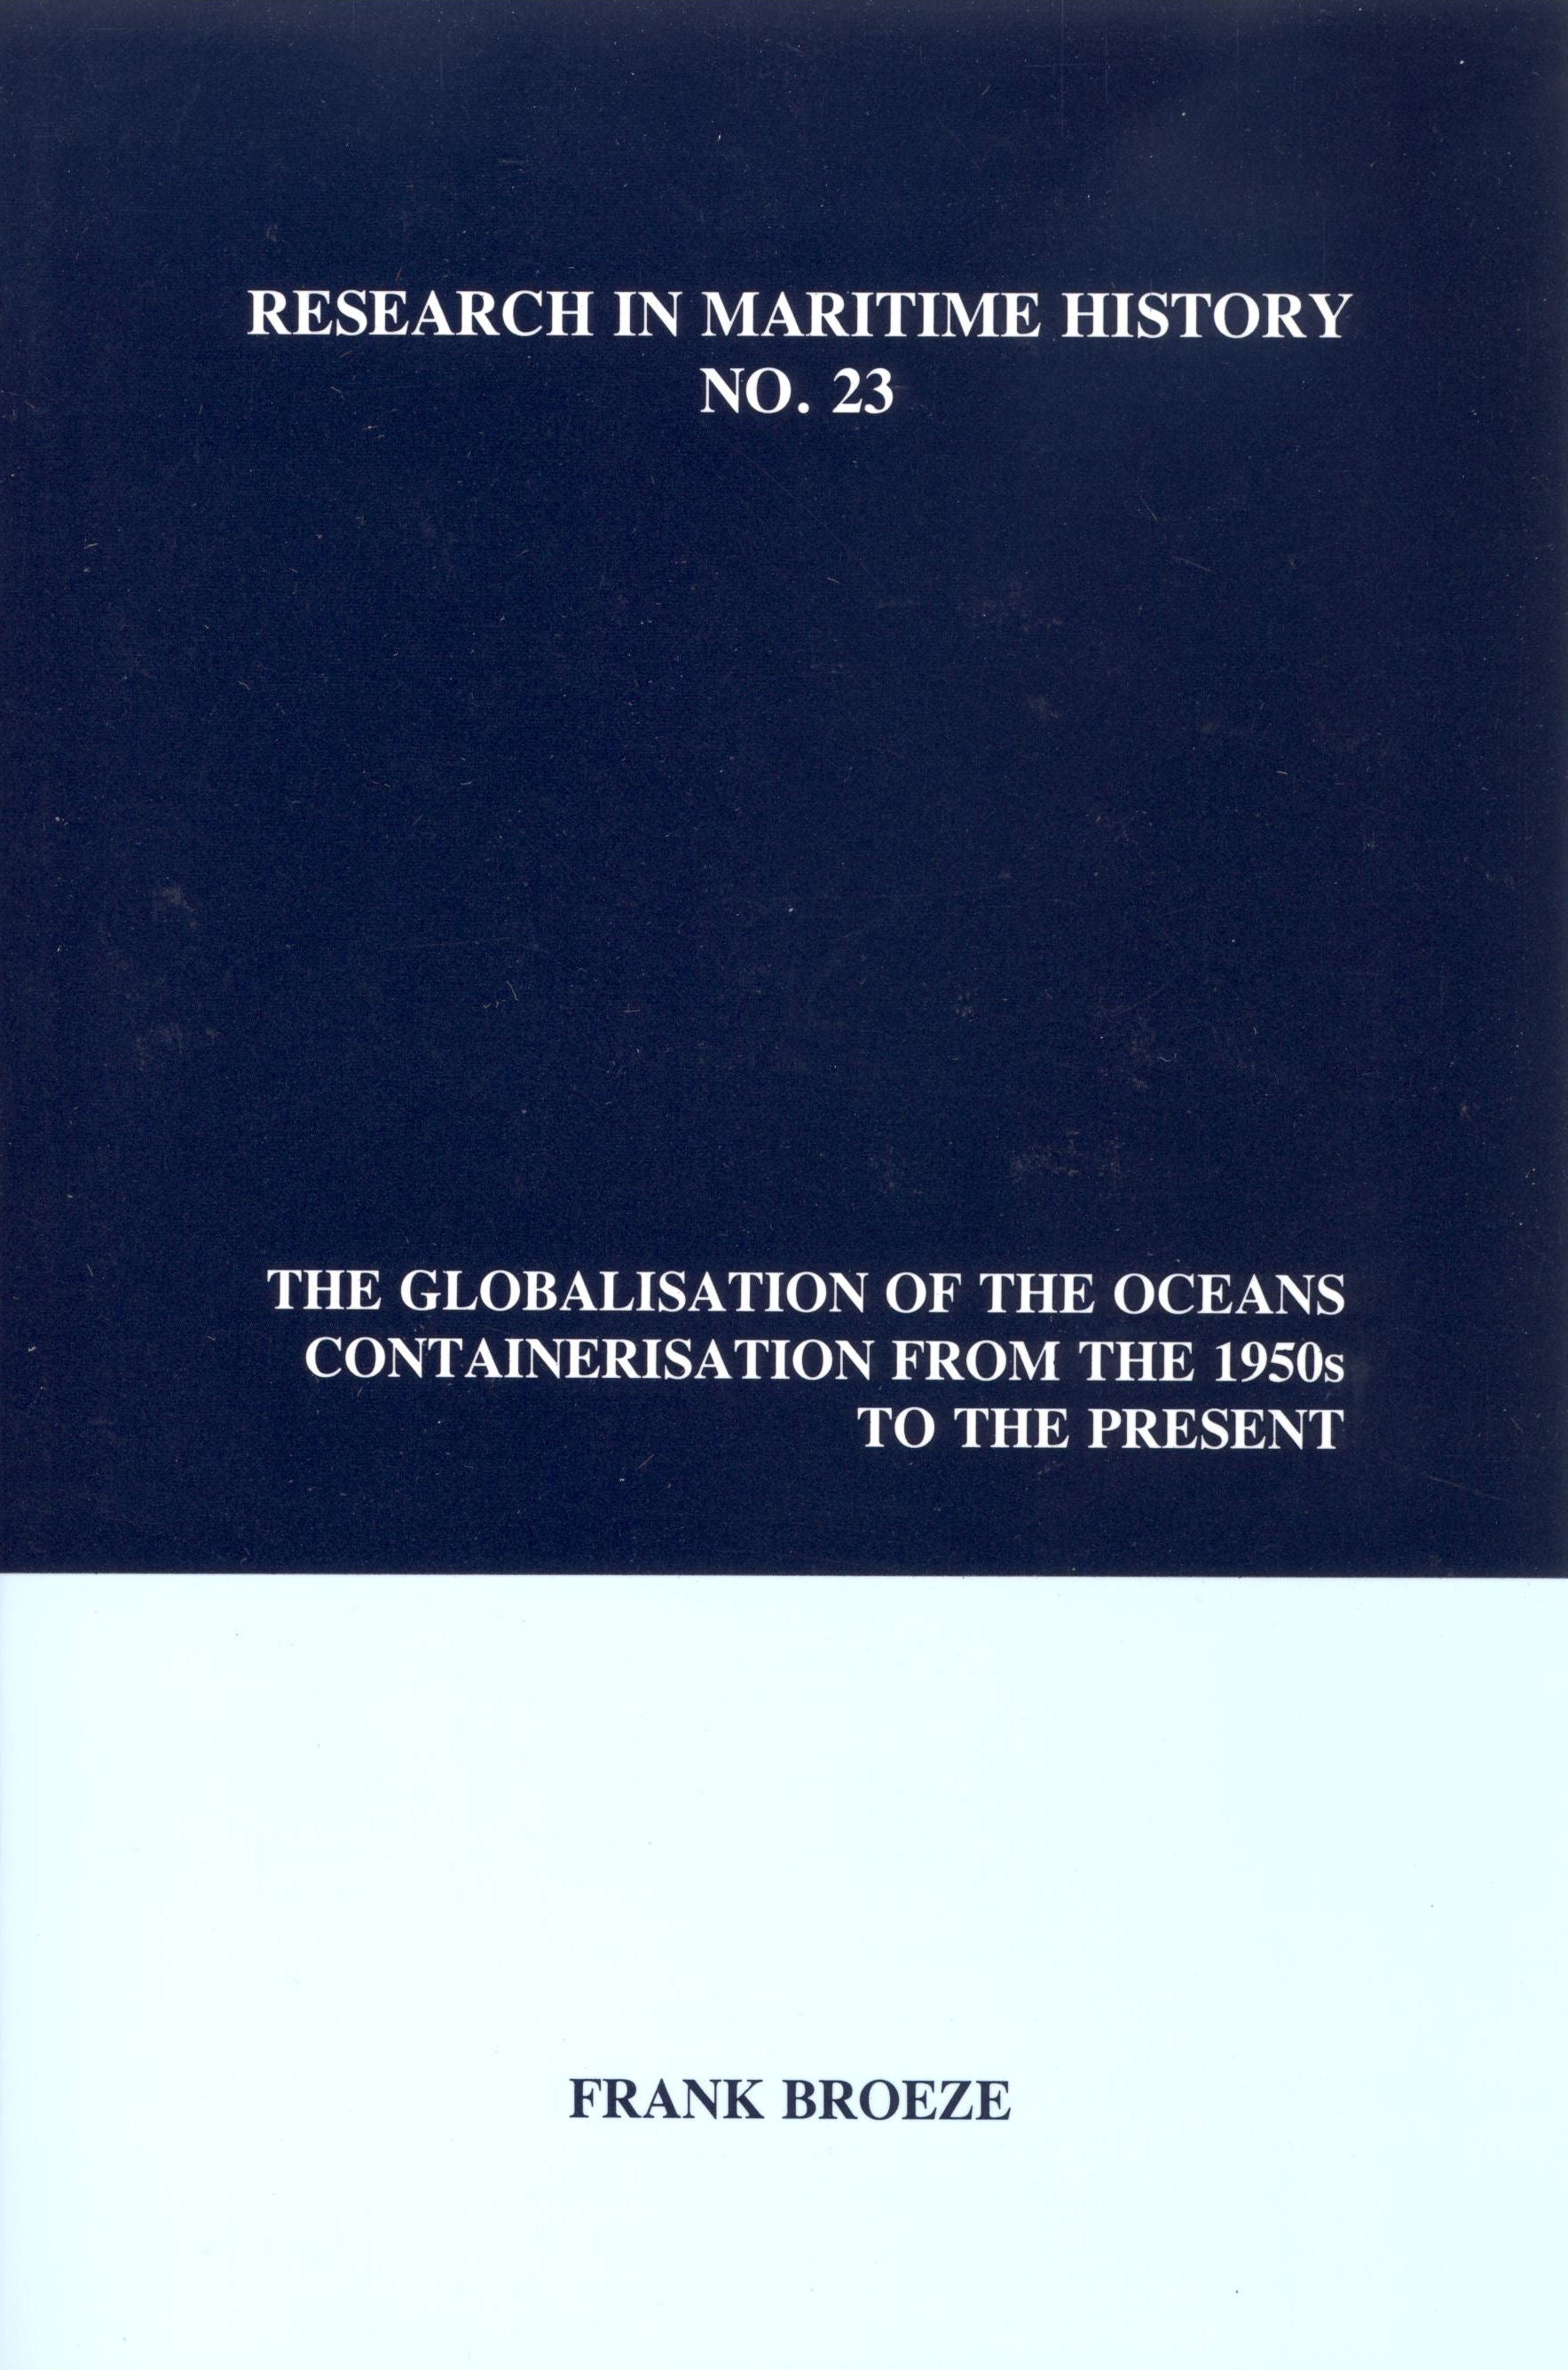 The Globalisation of the Oceans